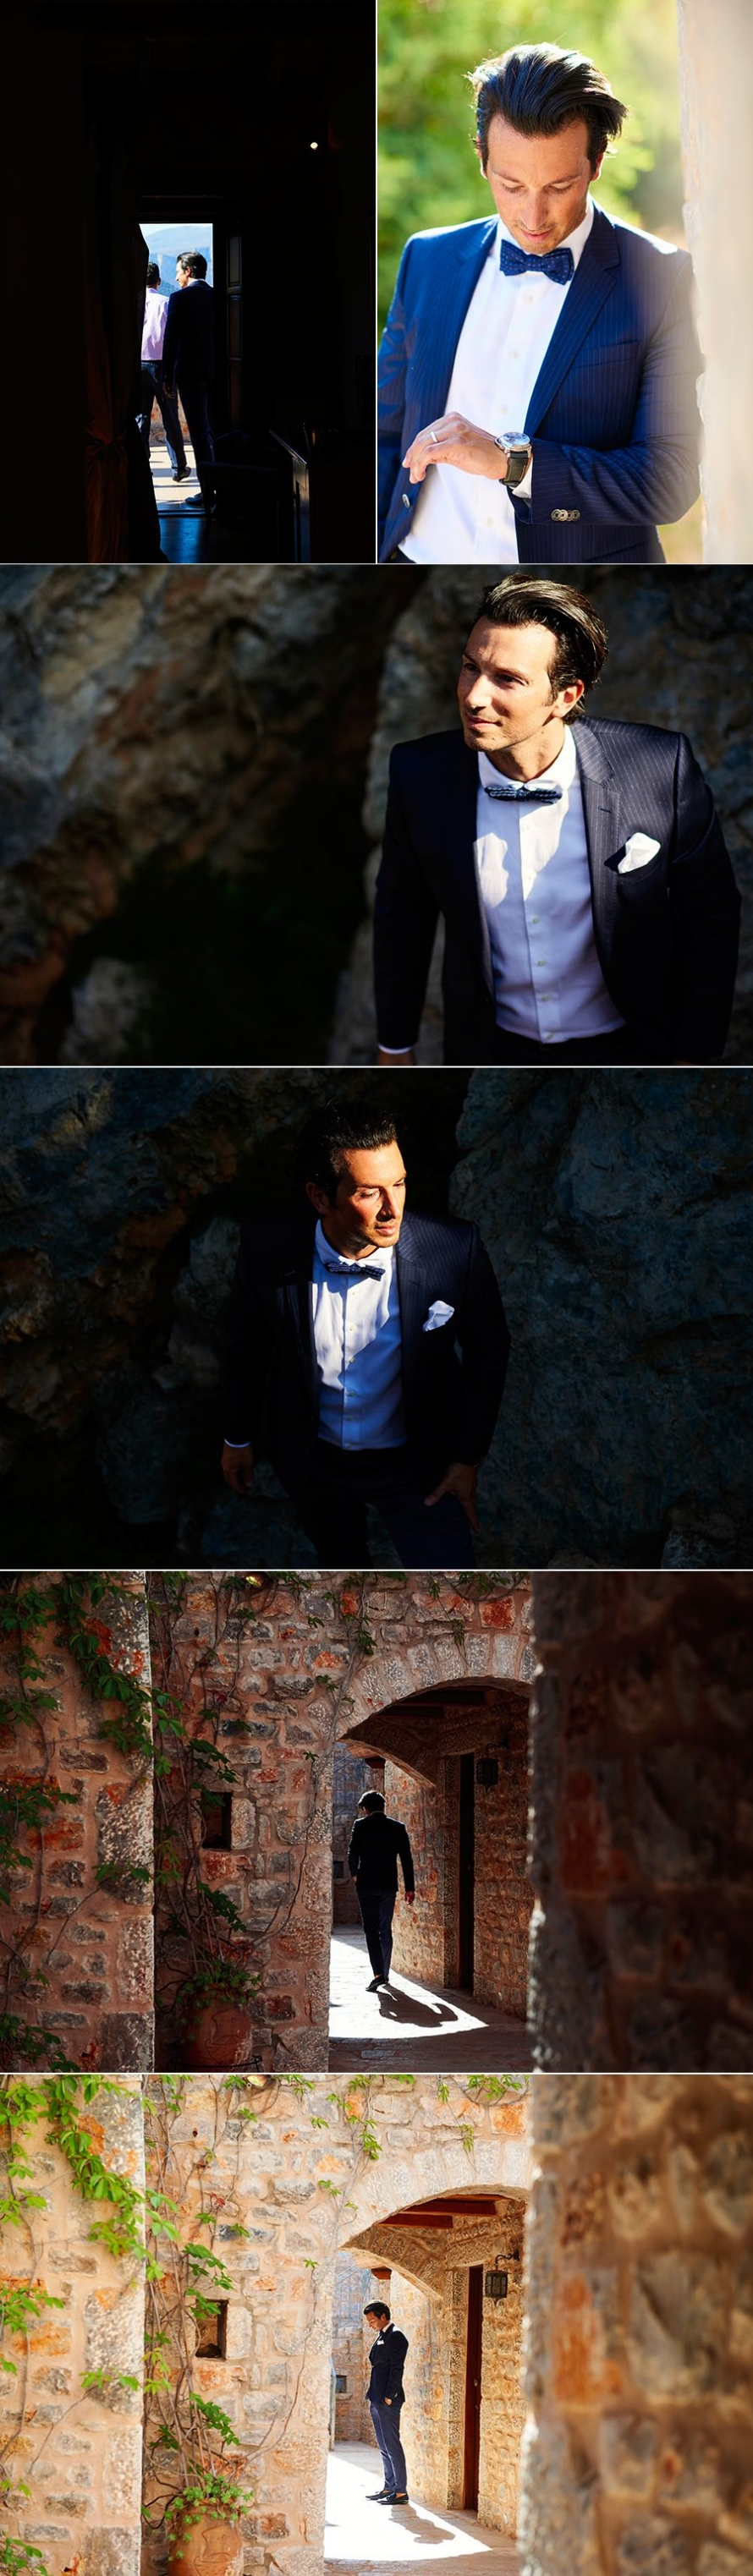 giannis-stella-wedding-photo-04